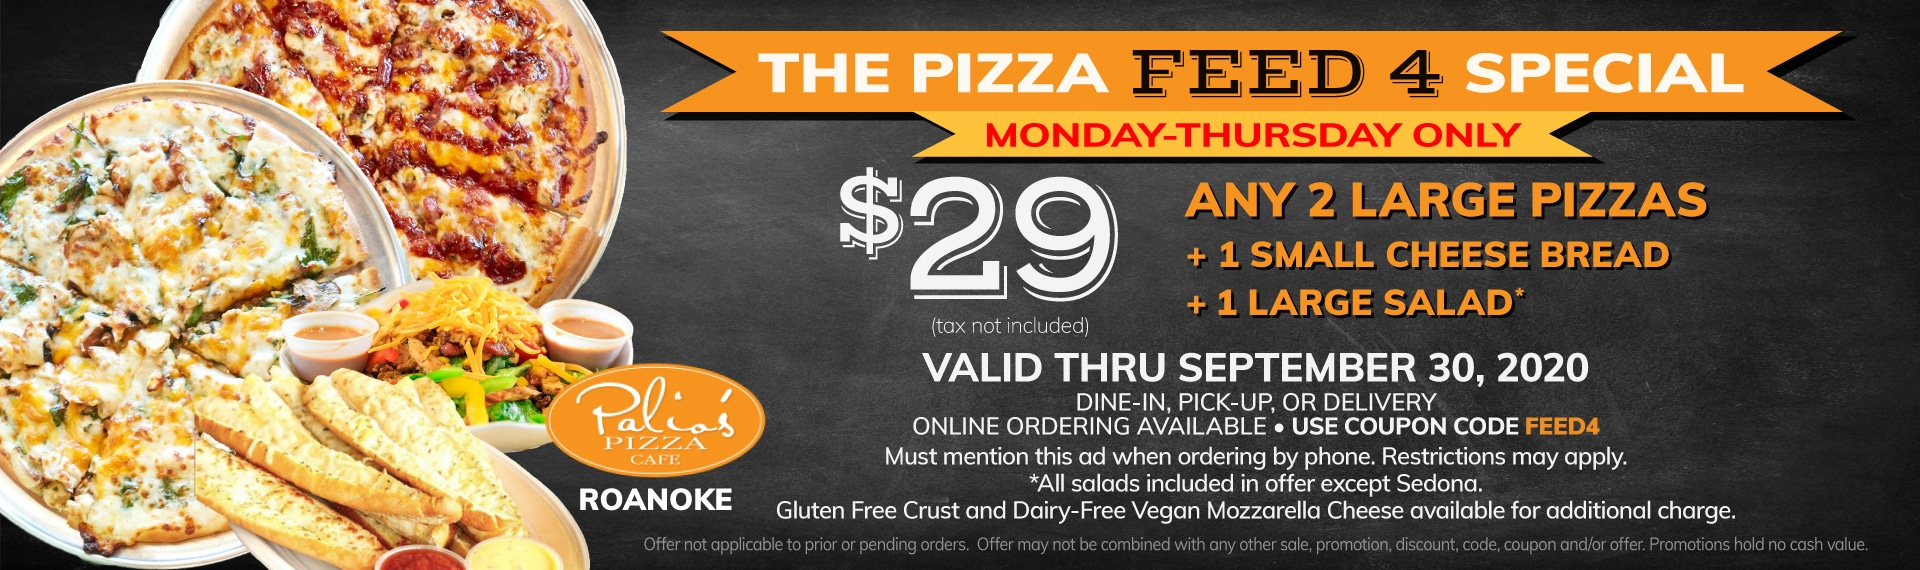 The Pizza Feed4 Special - Monday - Thursday